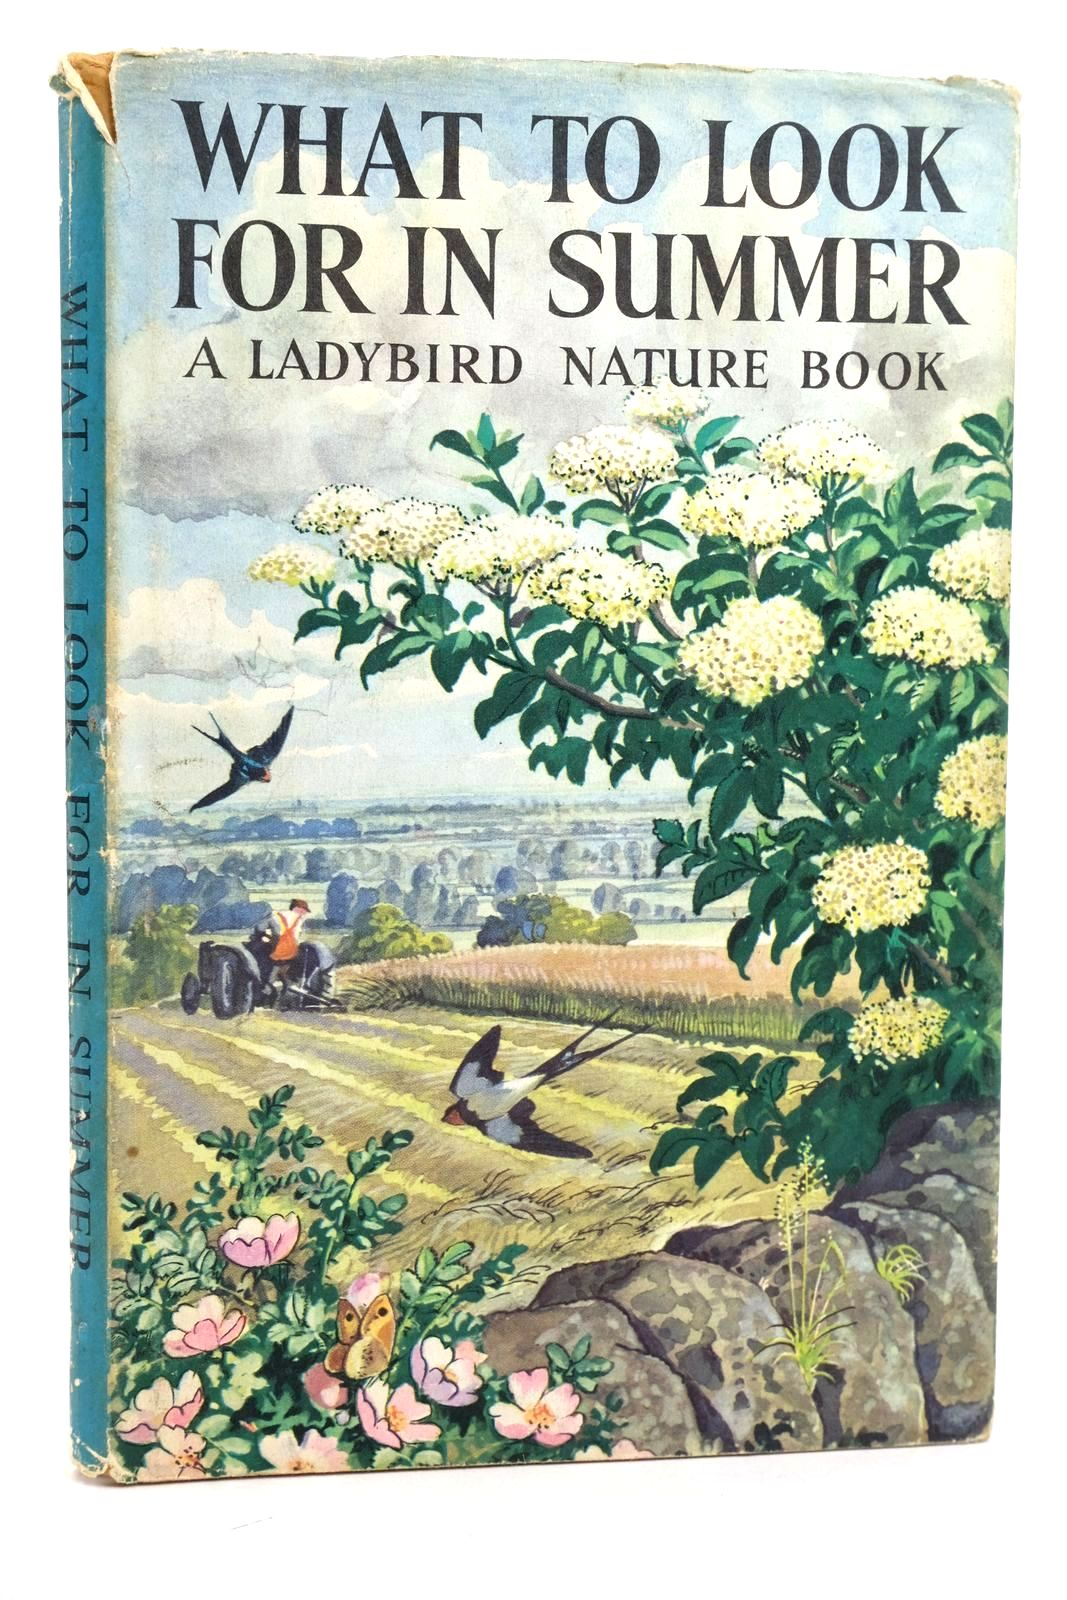 Photo of WHAT TO LOOK FOR IN SUMMER written by Watson, E.L. Grant illustrated by Tunnicliffe, C.F. published by Wills & Hepworth Ltd. (STOCK CODE: 1318834)  for sale by Stella & Rose's Books